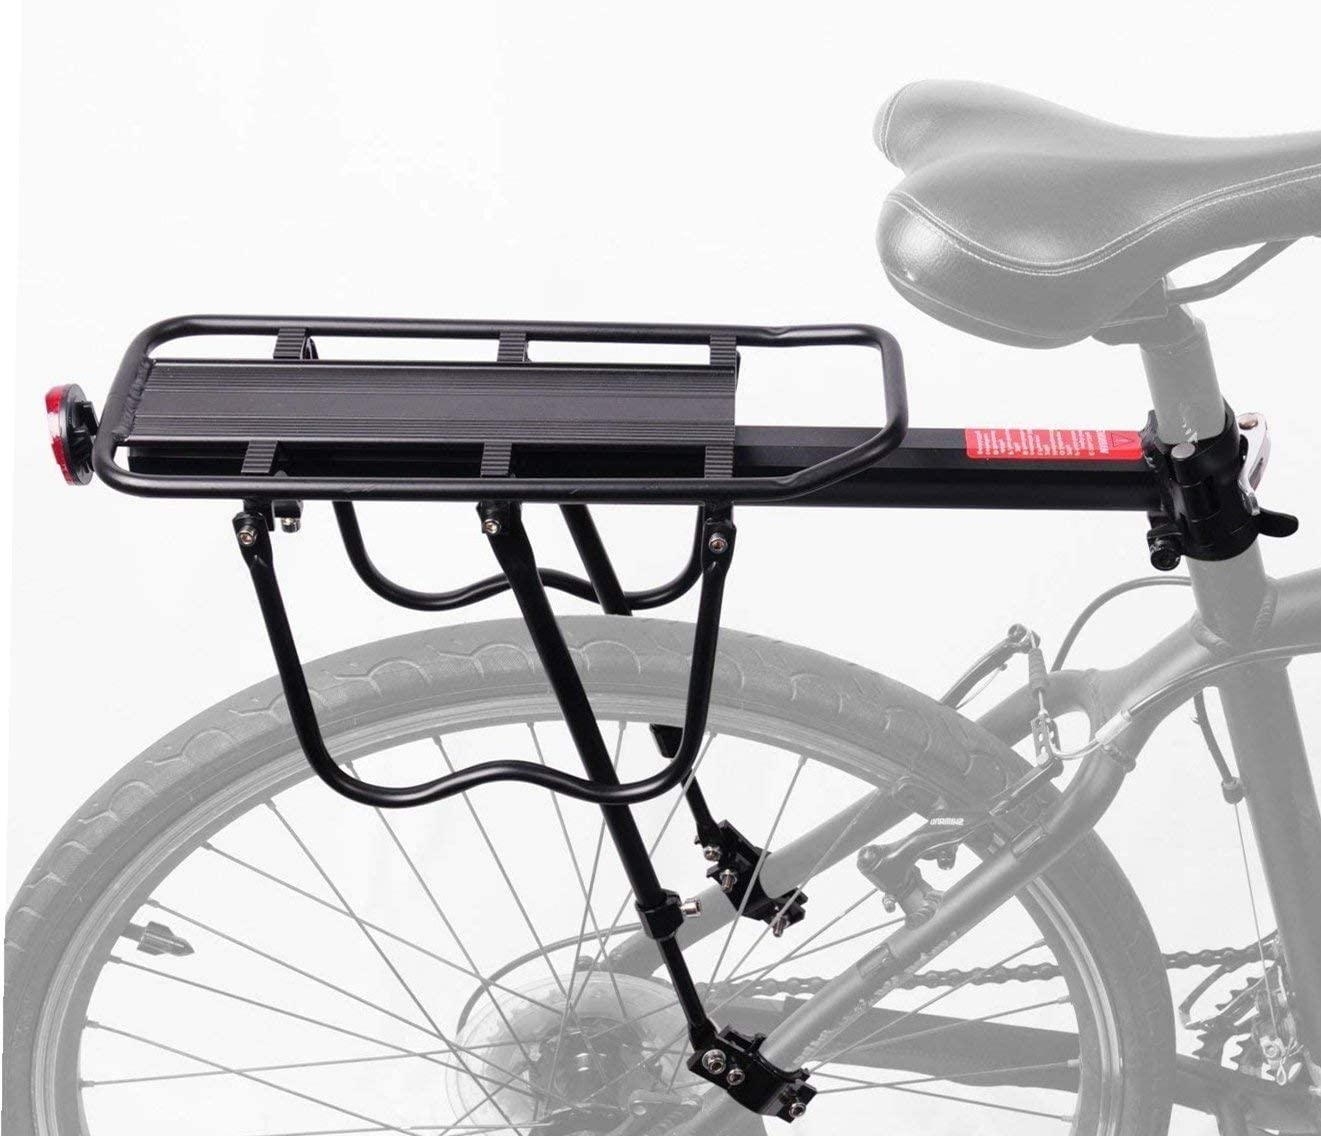 BLACK //usps Dr.Air Air Cushion Saddle Cover With Pump For MTB Bicycle Bike